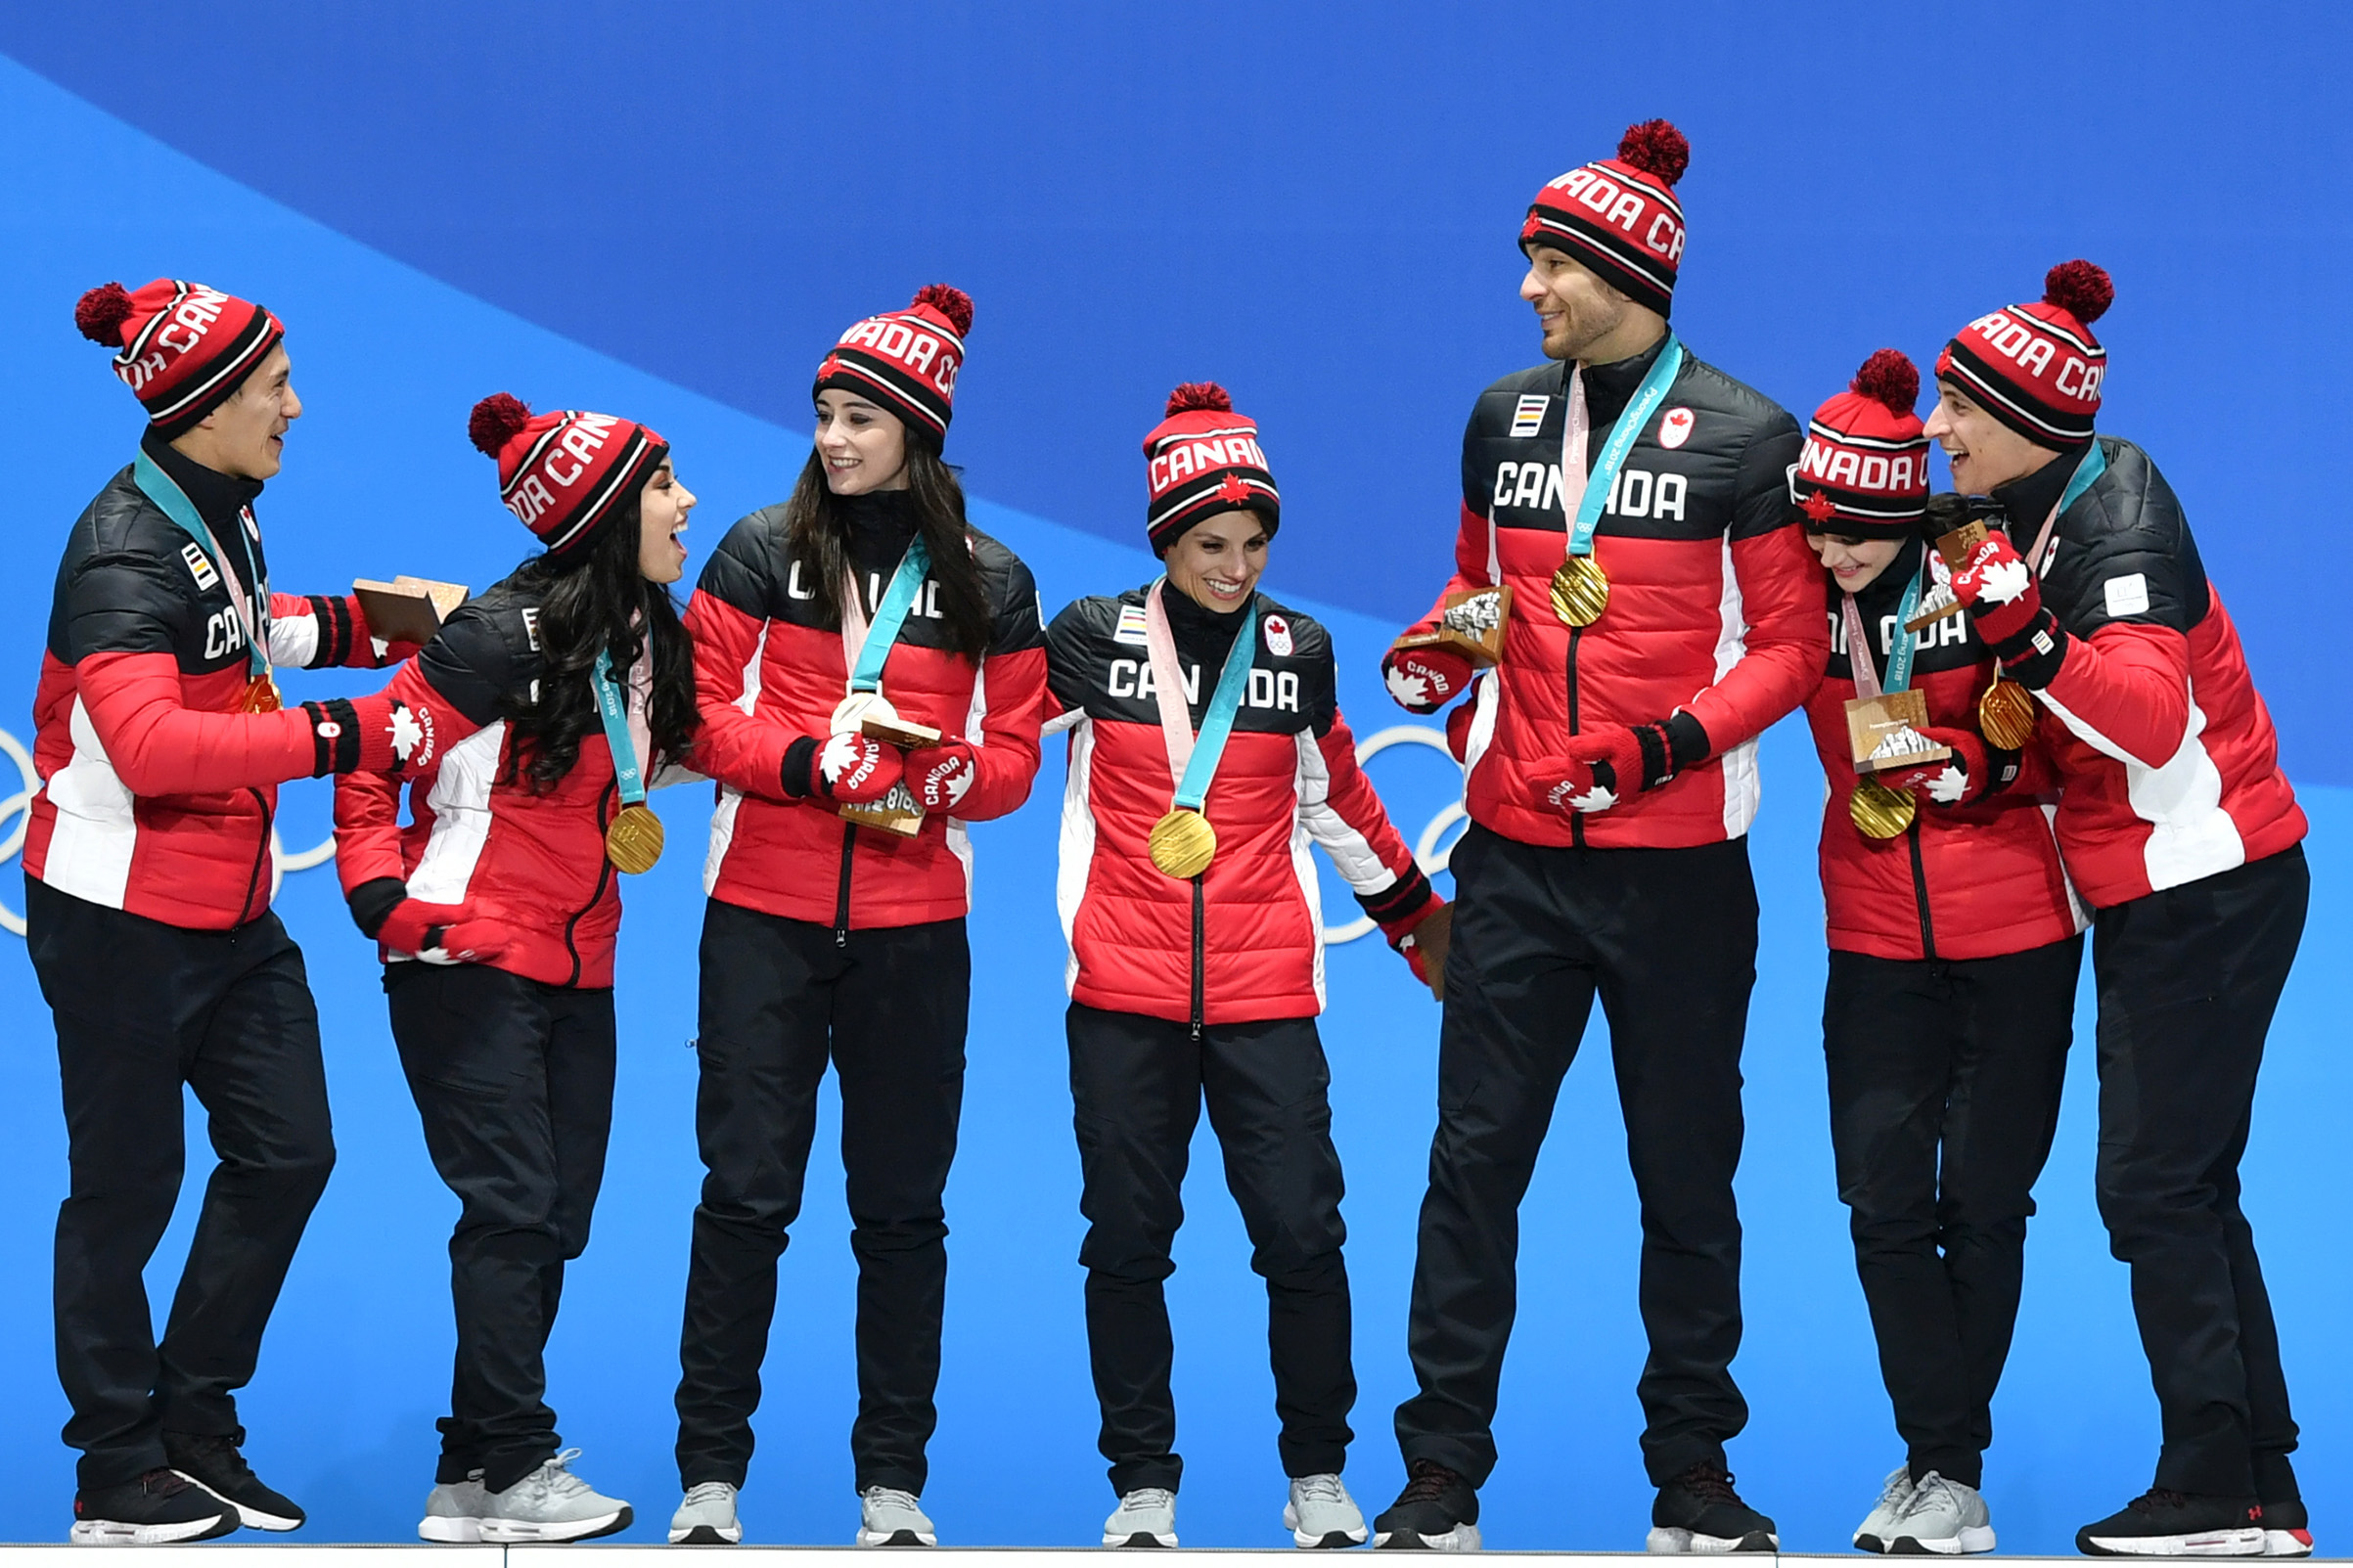 Canada's gold medal-winning team celebrate on the podium during the medal ceremony for the figure skating team event on Feb. 12, 2018.